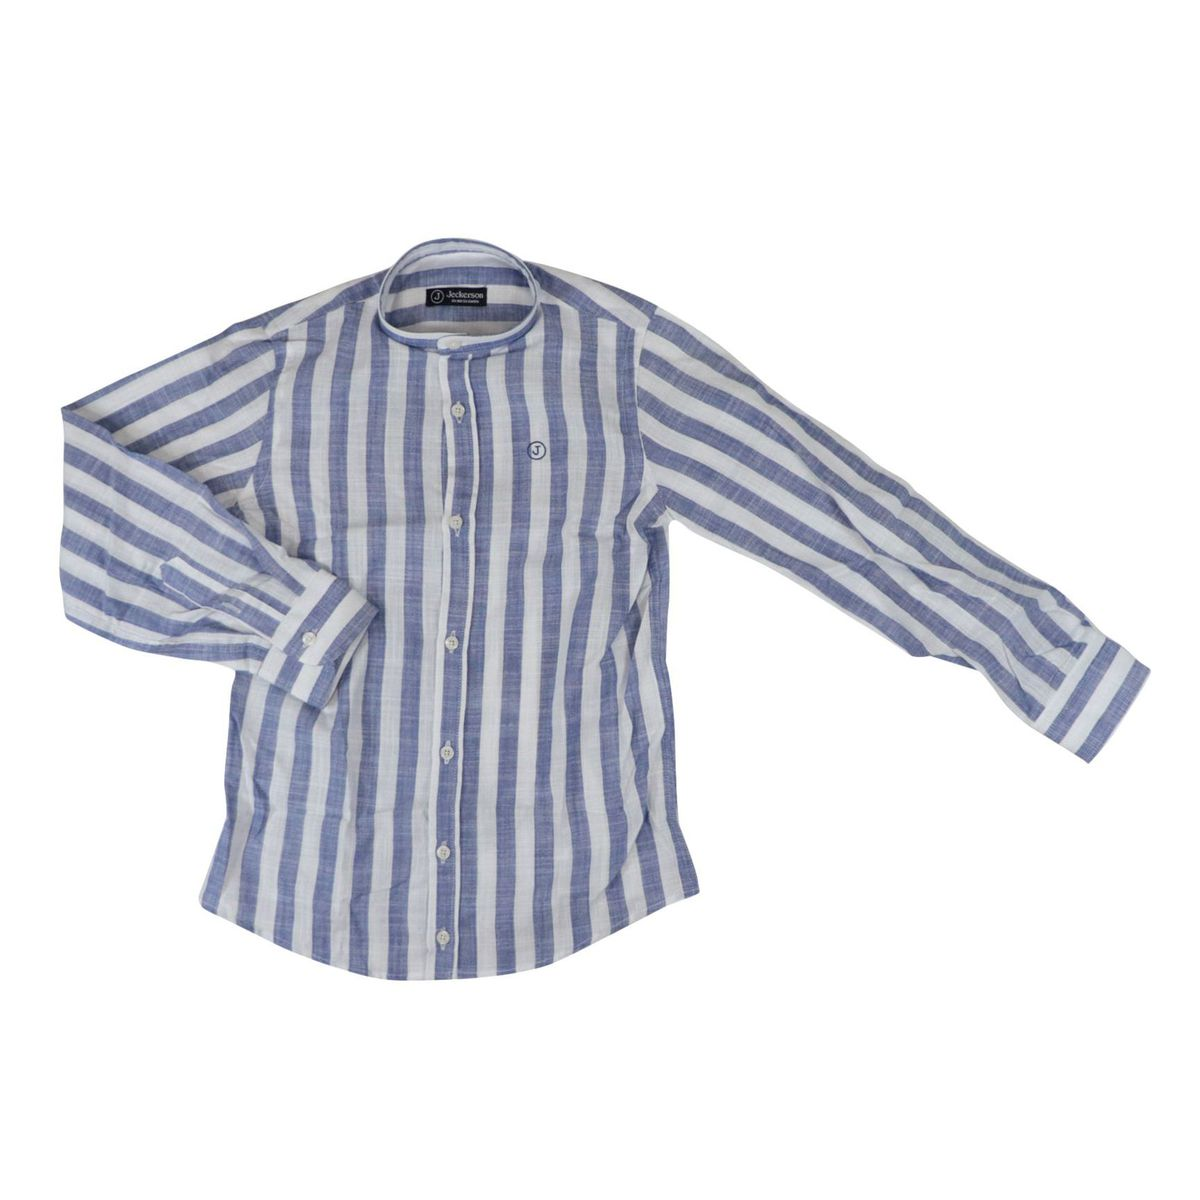 Long-sleeved striped linen shirt White / blue Jeckerson